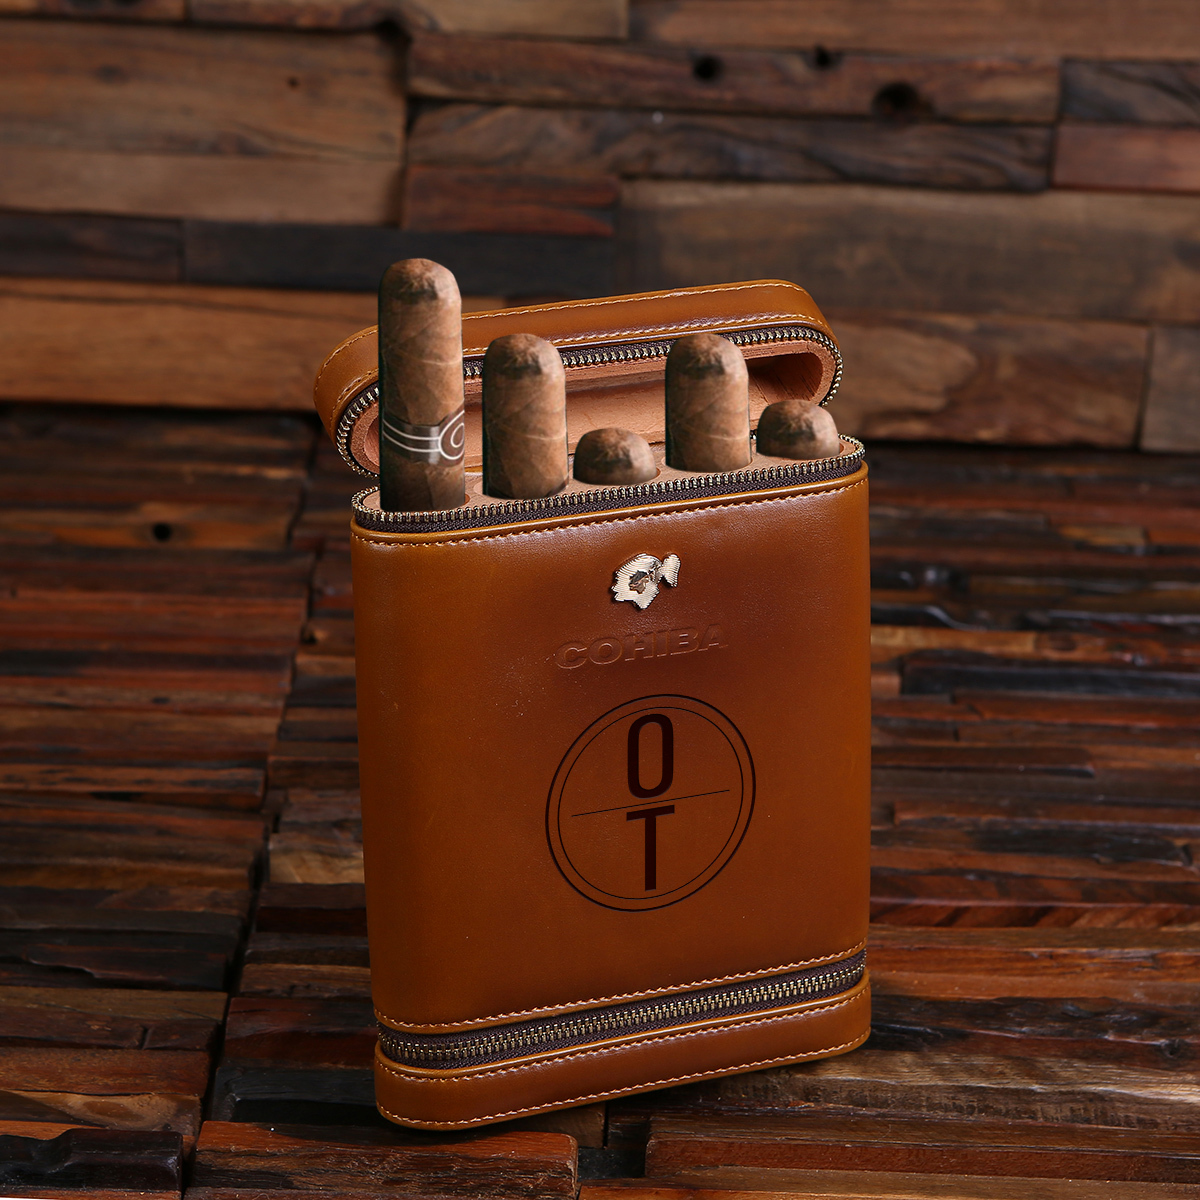 The Guat Cohiba Leather Cigar Holder TP-027848